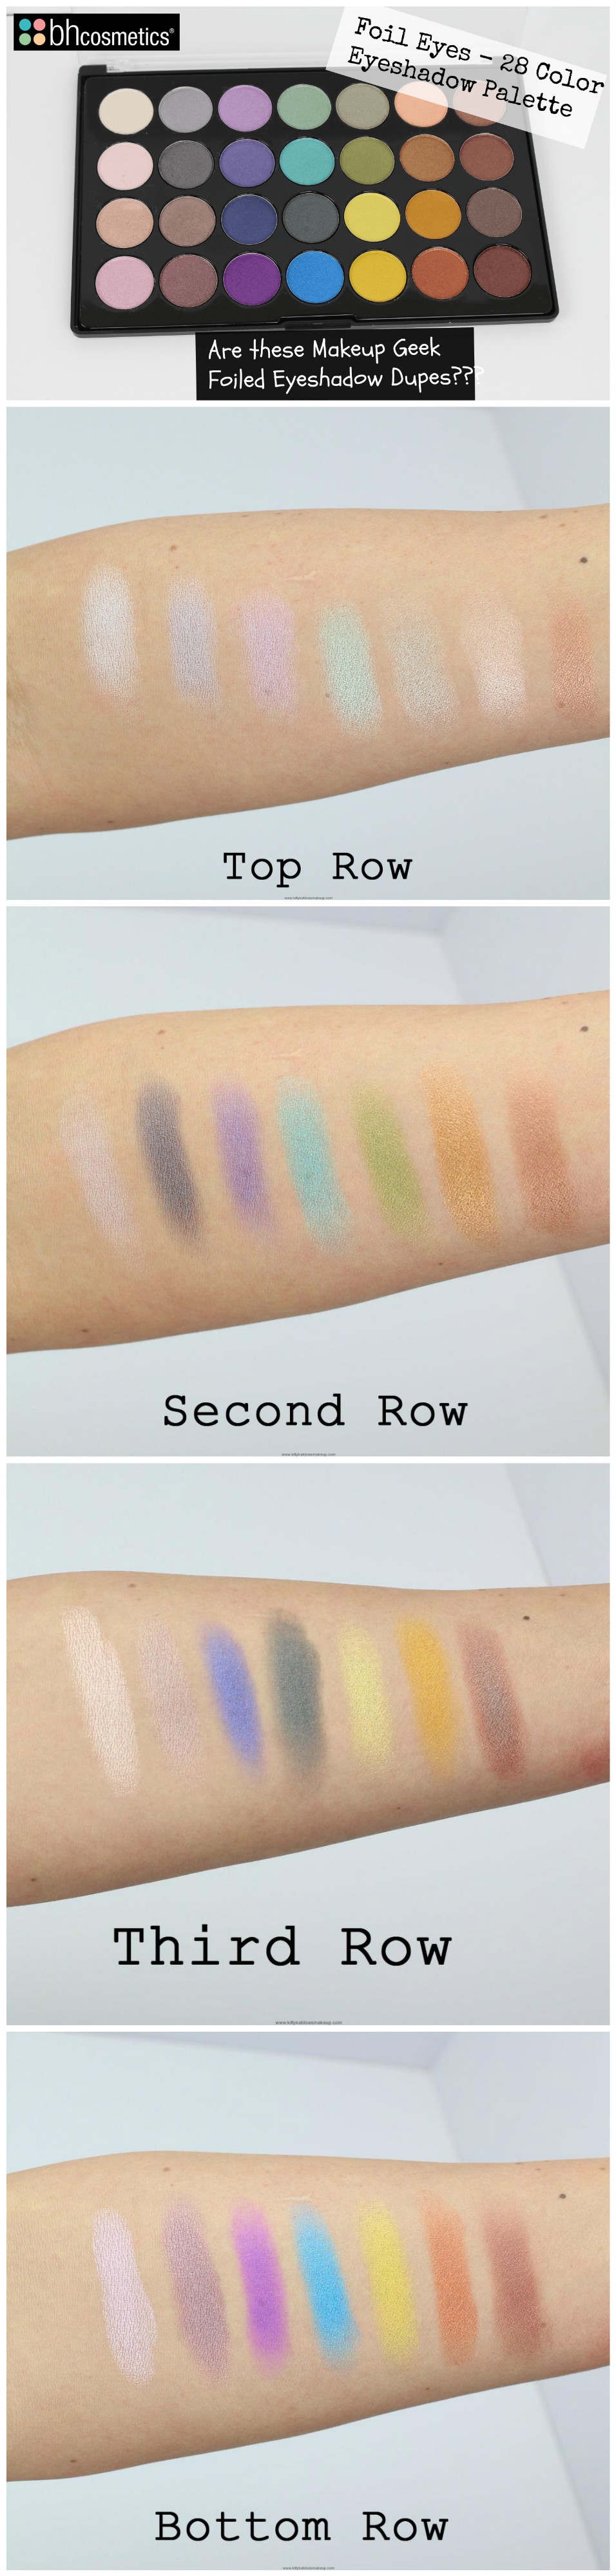 Foil Eyes 28 Color Eyeshadow Palette by BH Cosmetics #13